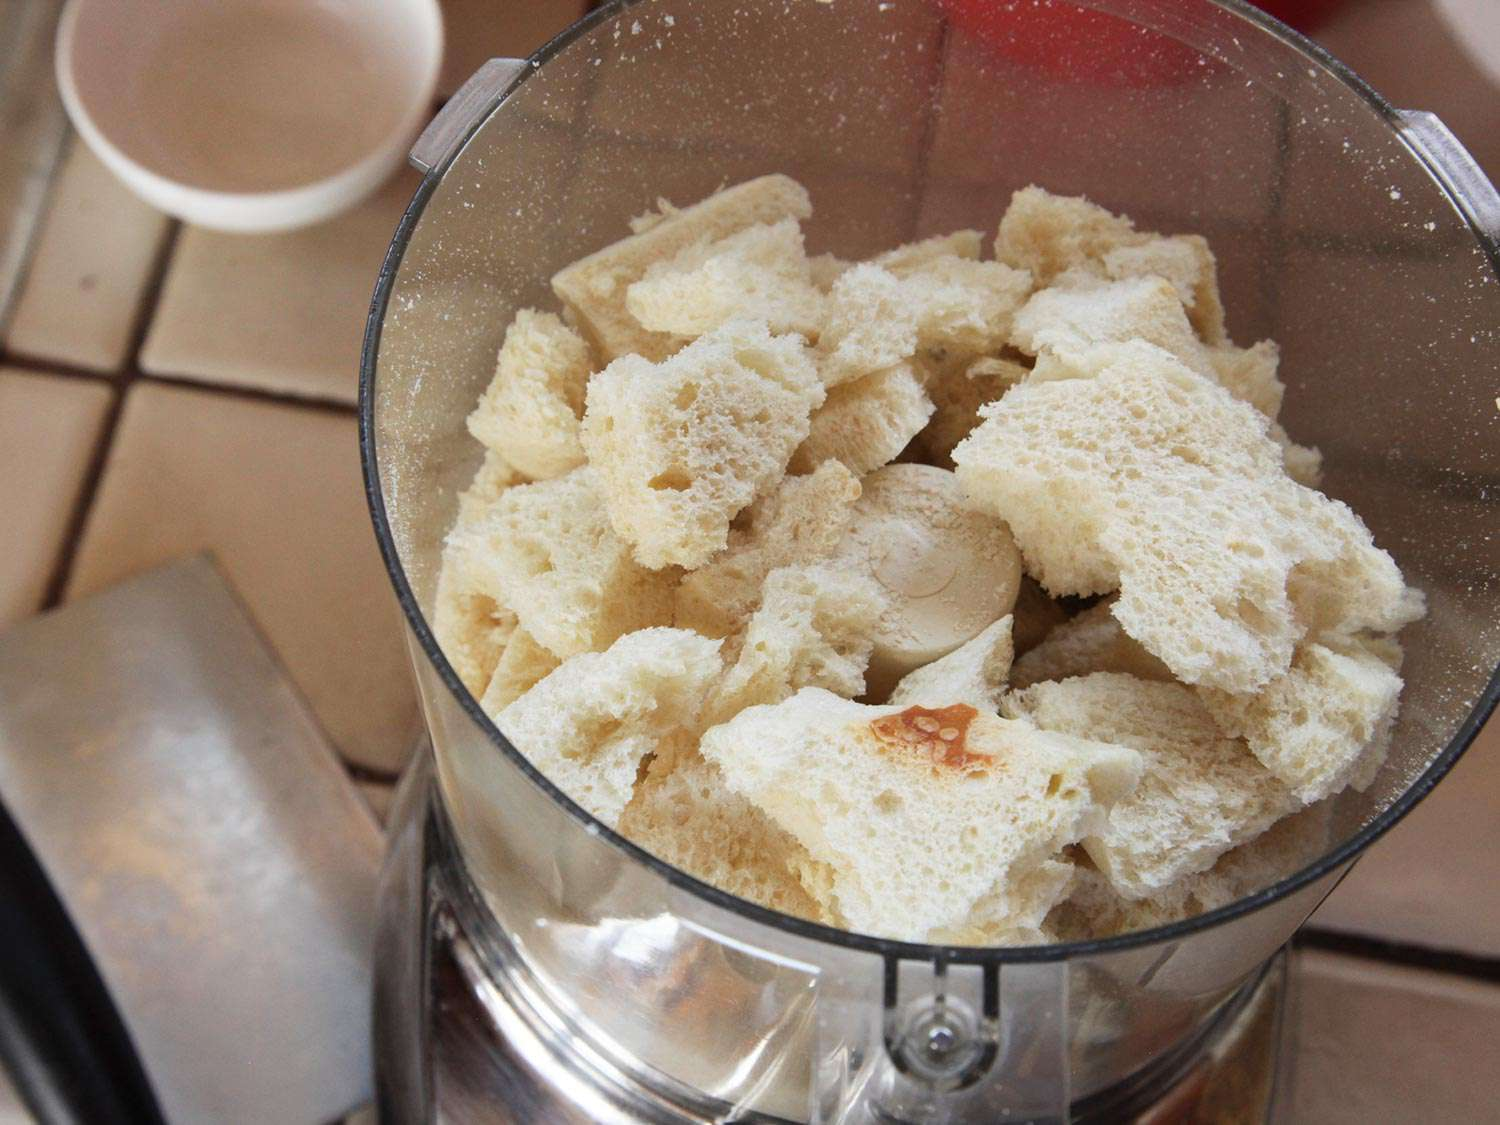 Crustless dehydrated craggy bits of bread in food processor bowl